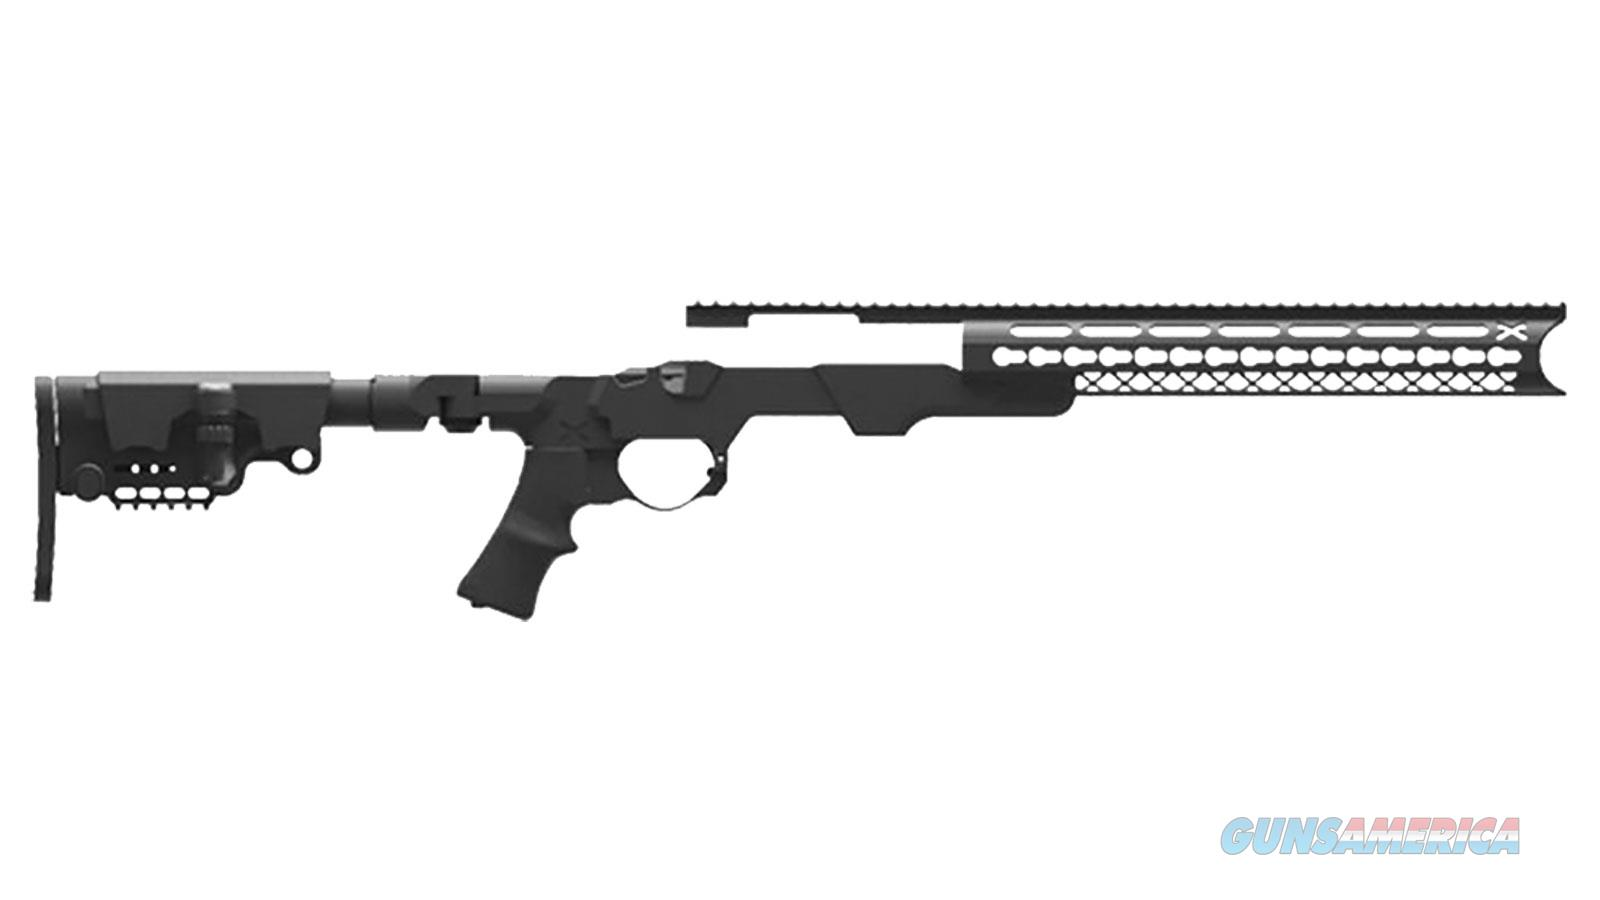 American Built Arms Company Modx Rfl System 308 Blk Sid ABAMX700SFB  Non-Guns > Gunstocks, Grips & Wood